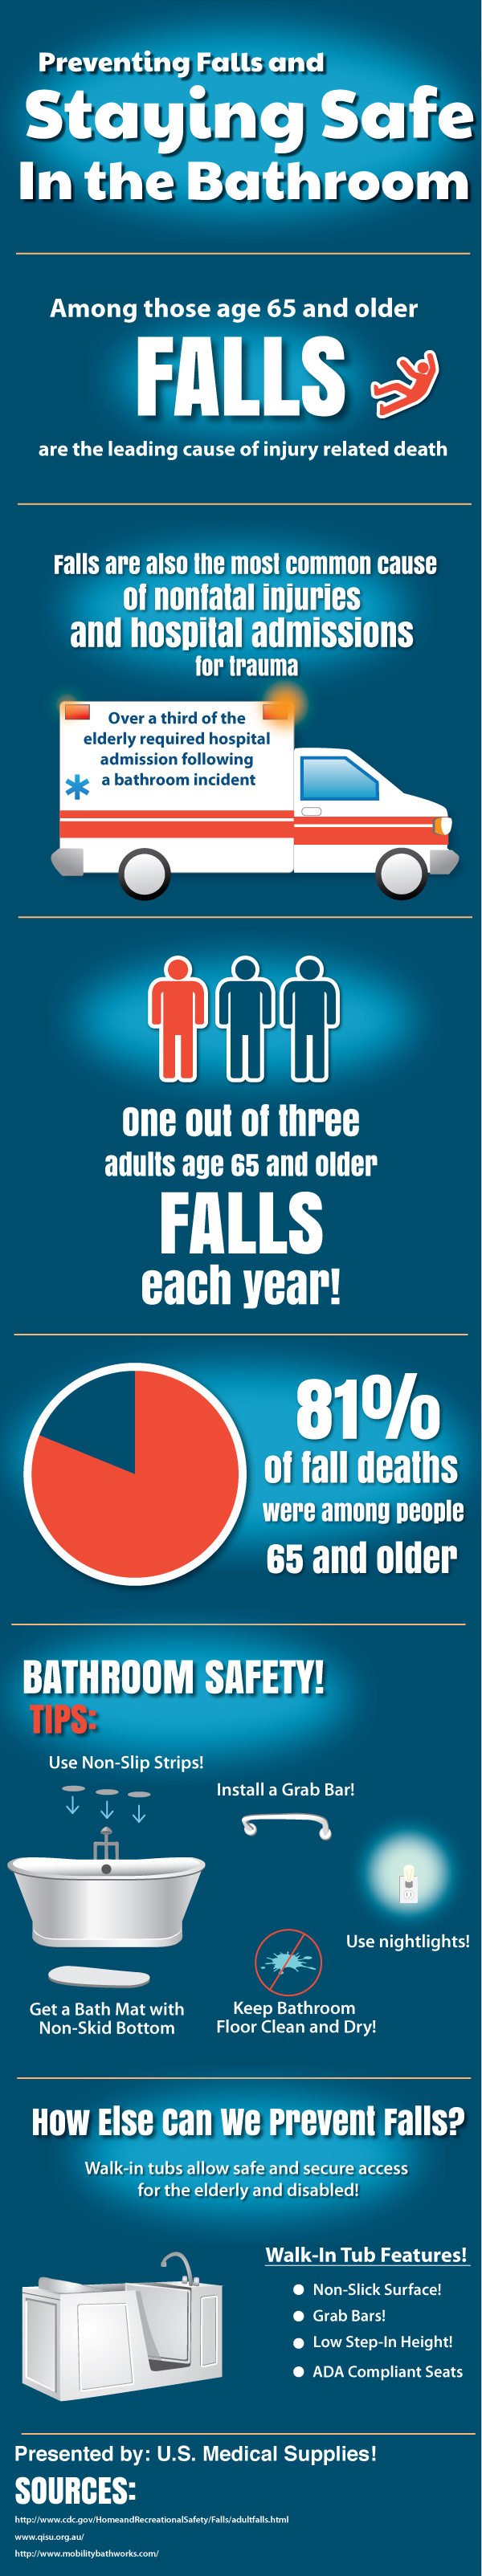 Falls are the leading cause of injury-related death among people over age 65. Don't become a statistic!